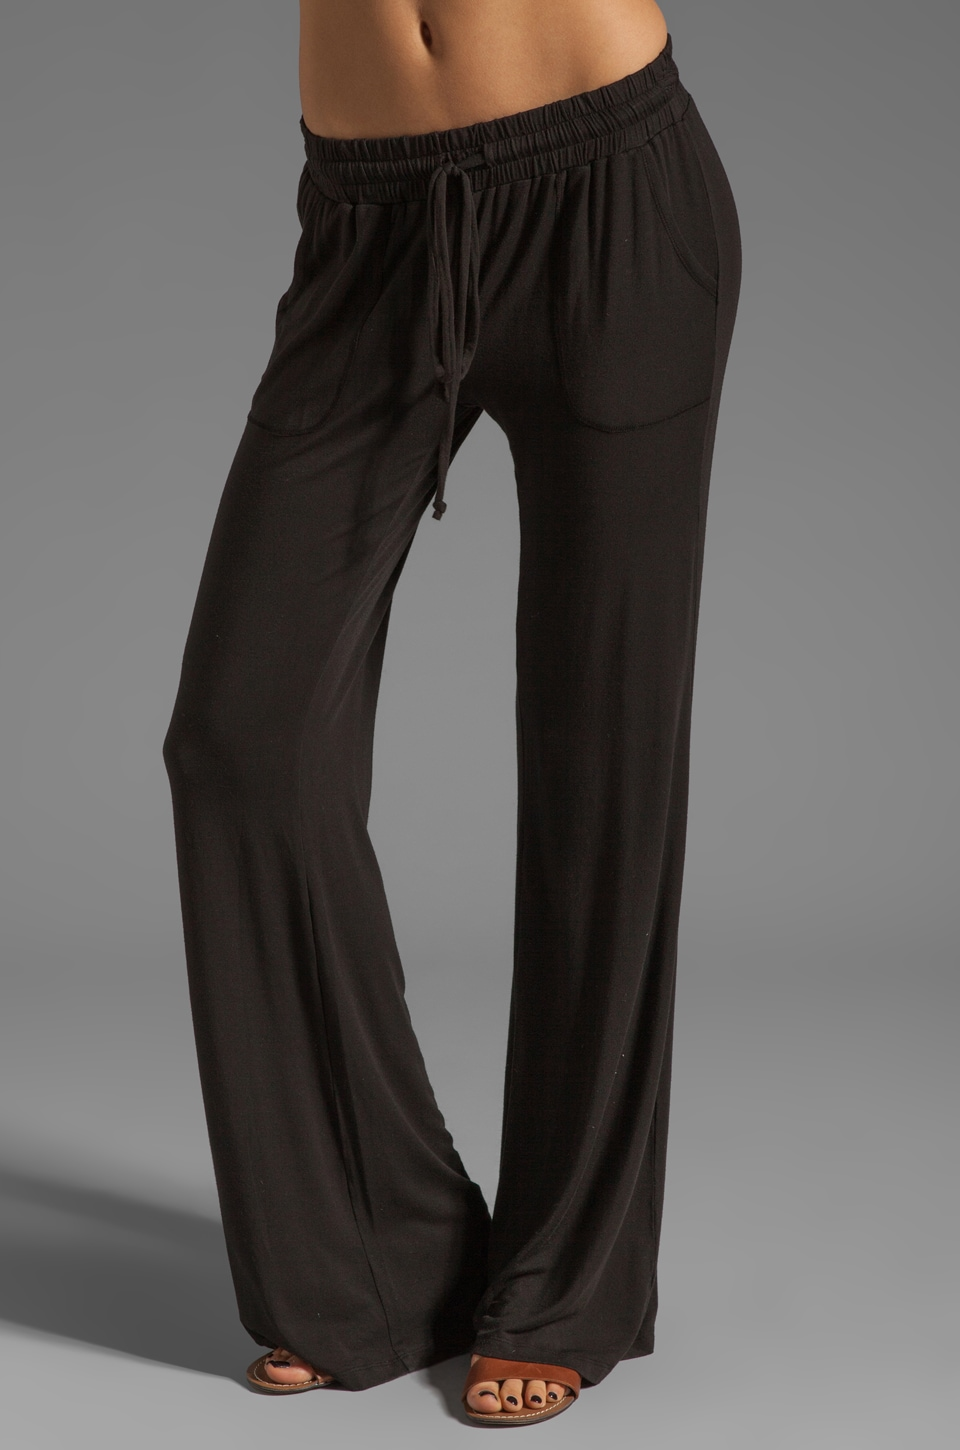 LA Made Drawstring Easy Pants in Black